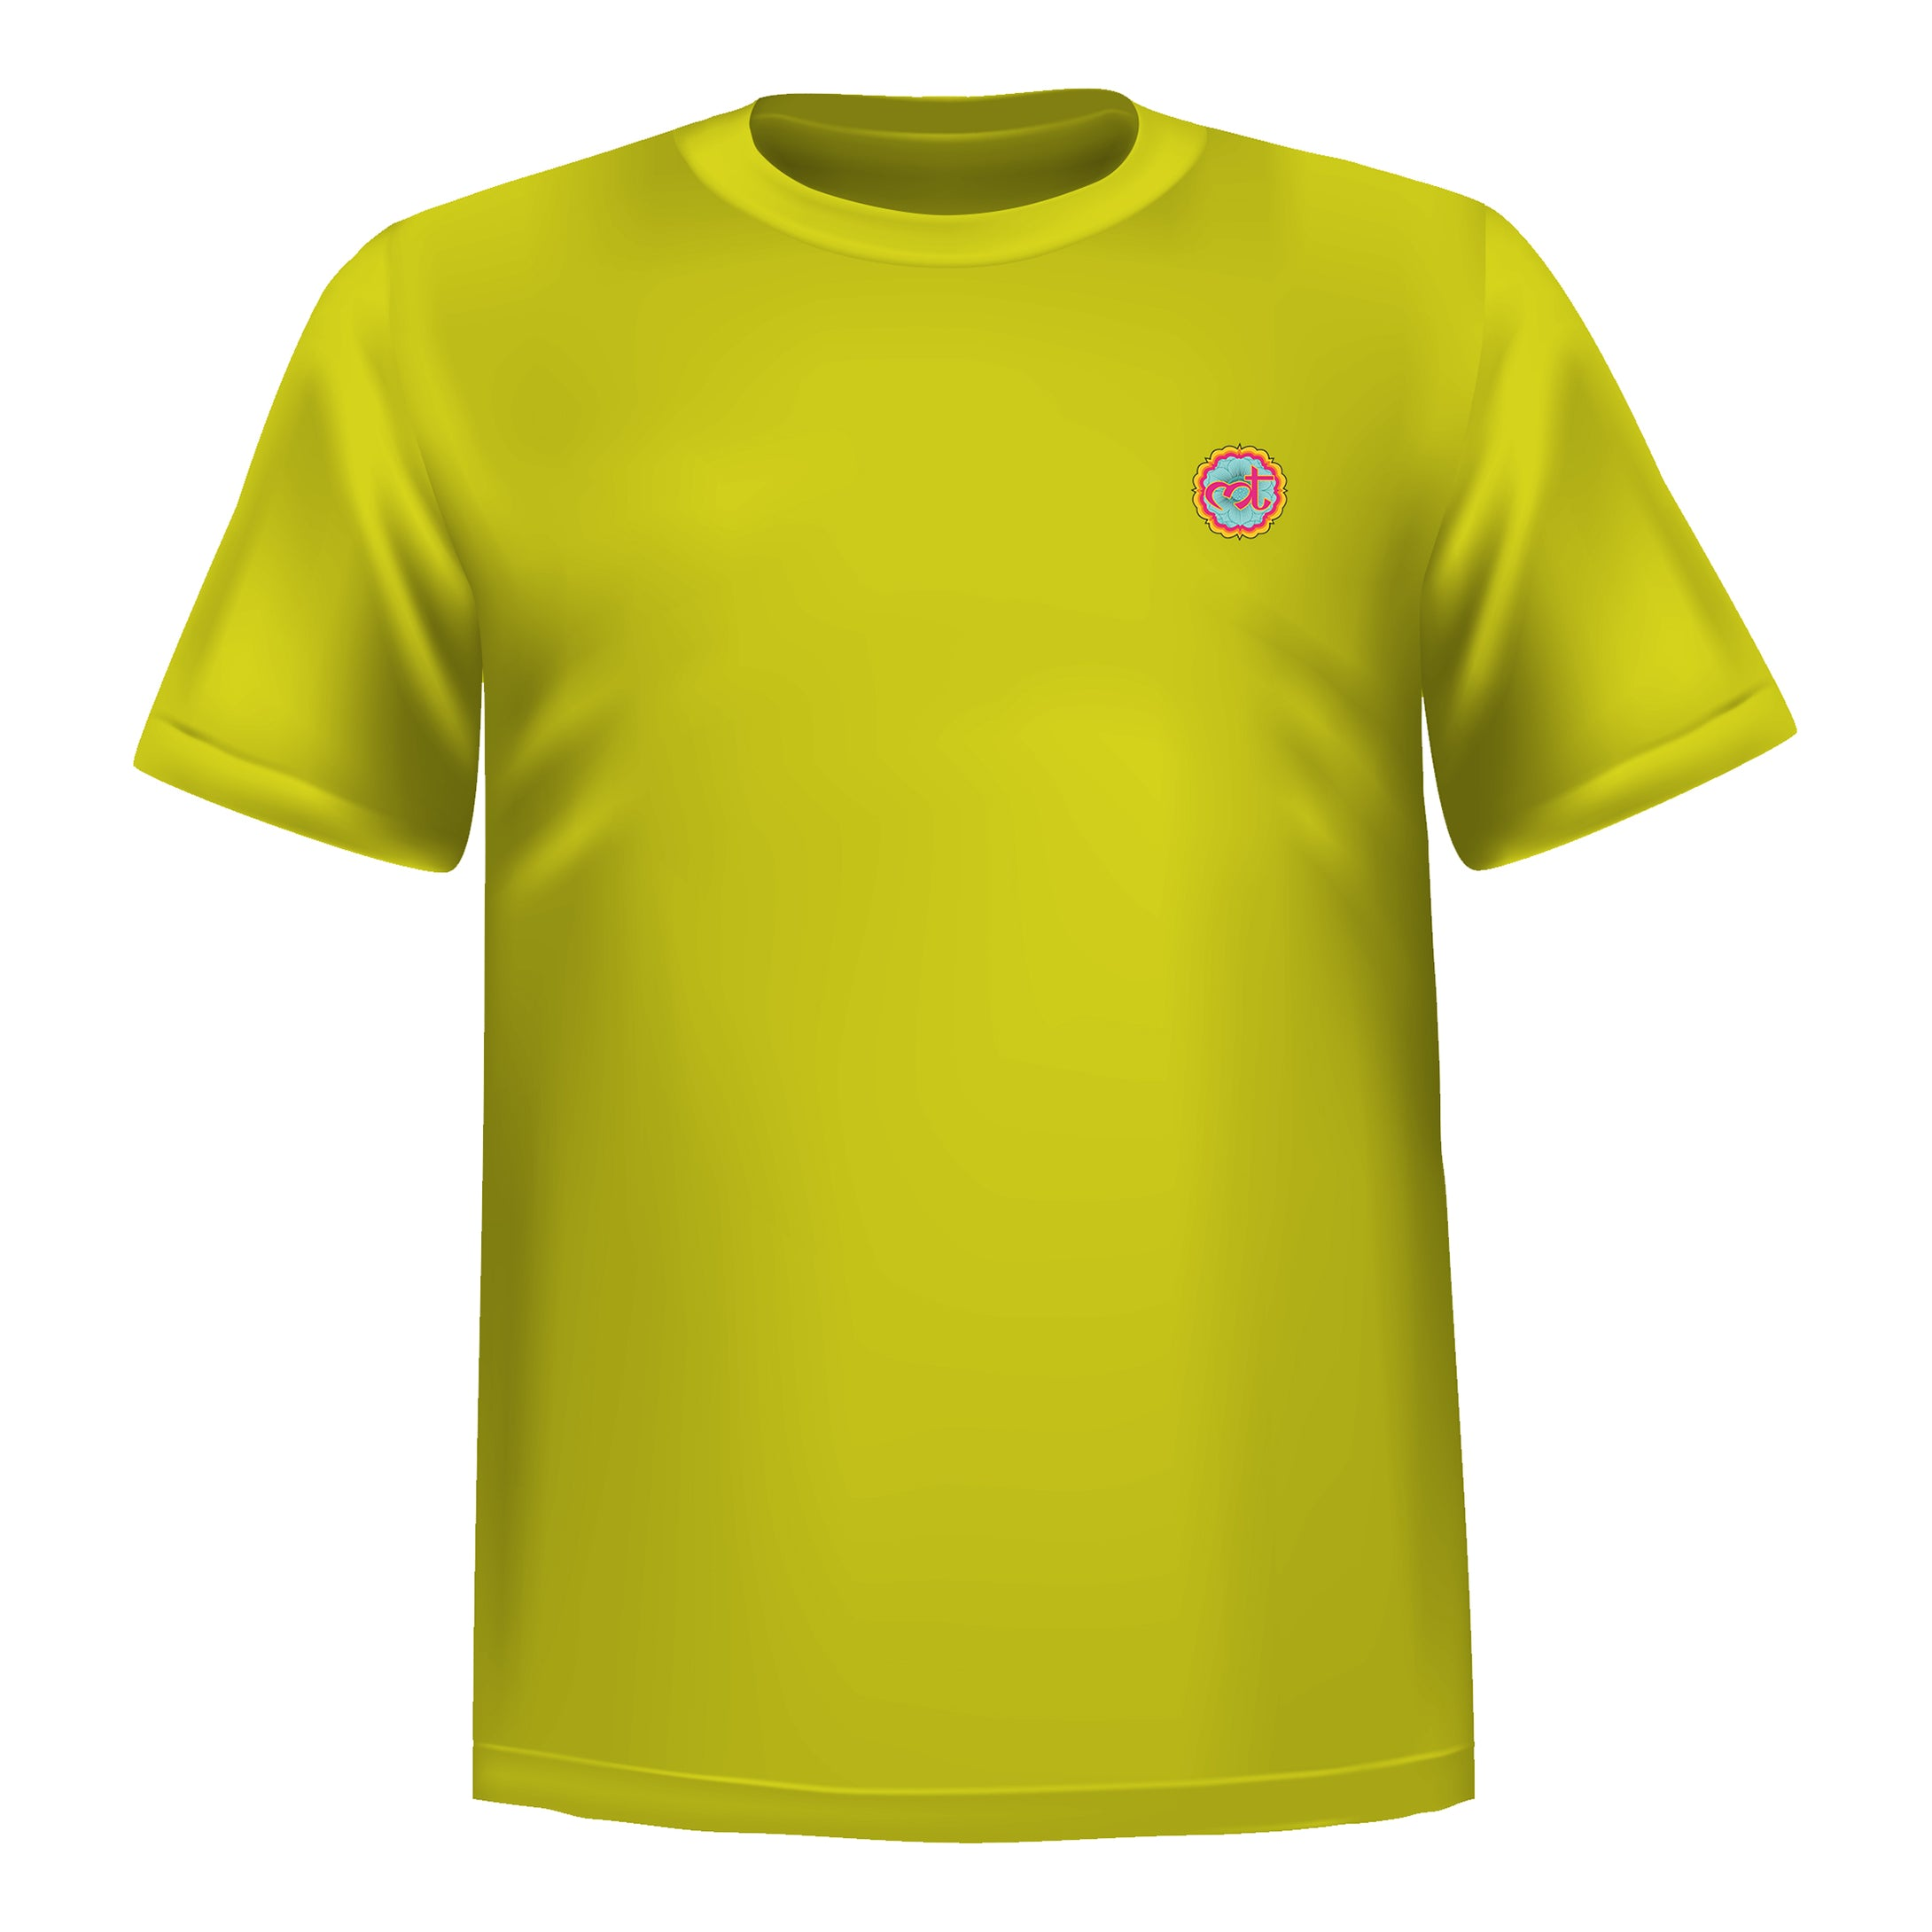 Dri Fit T-Shirt Yellow